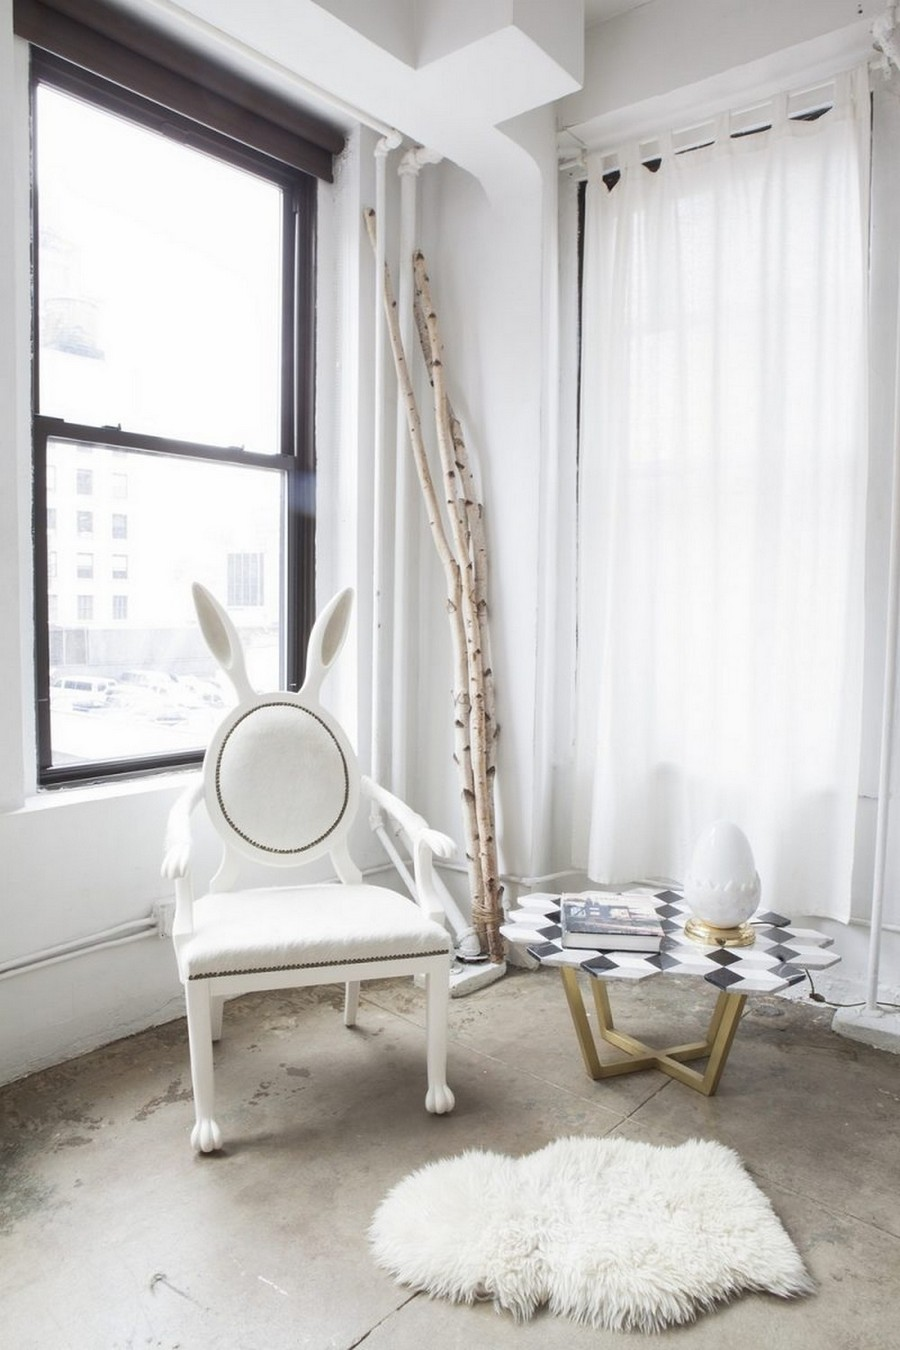 Merve Kahraman's Signature Style Is All About Sustainable Design merve kahraman Merve Kahraman's Signature Style Is All About Sustainable Design Merve Kahramans Signature Style Is All About Sustainable Design 4